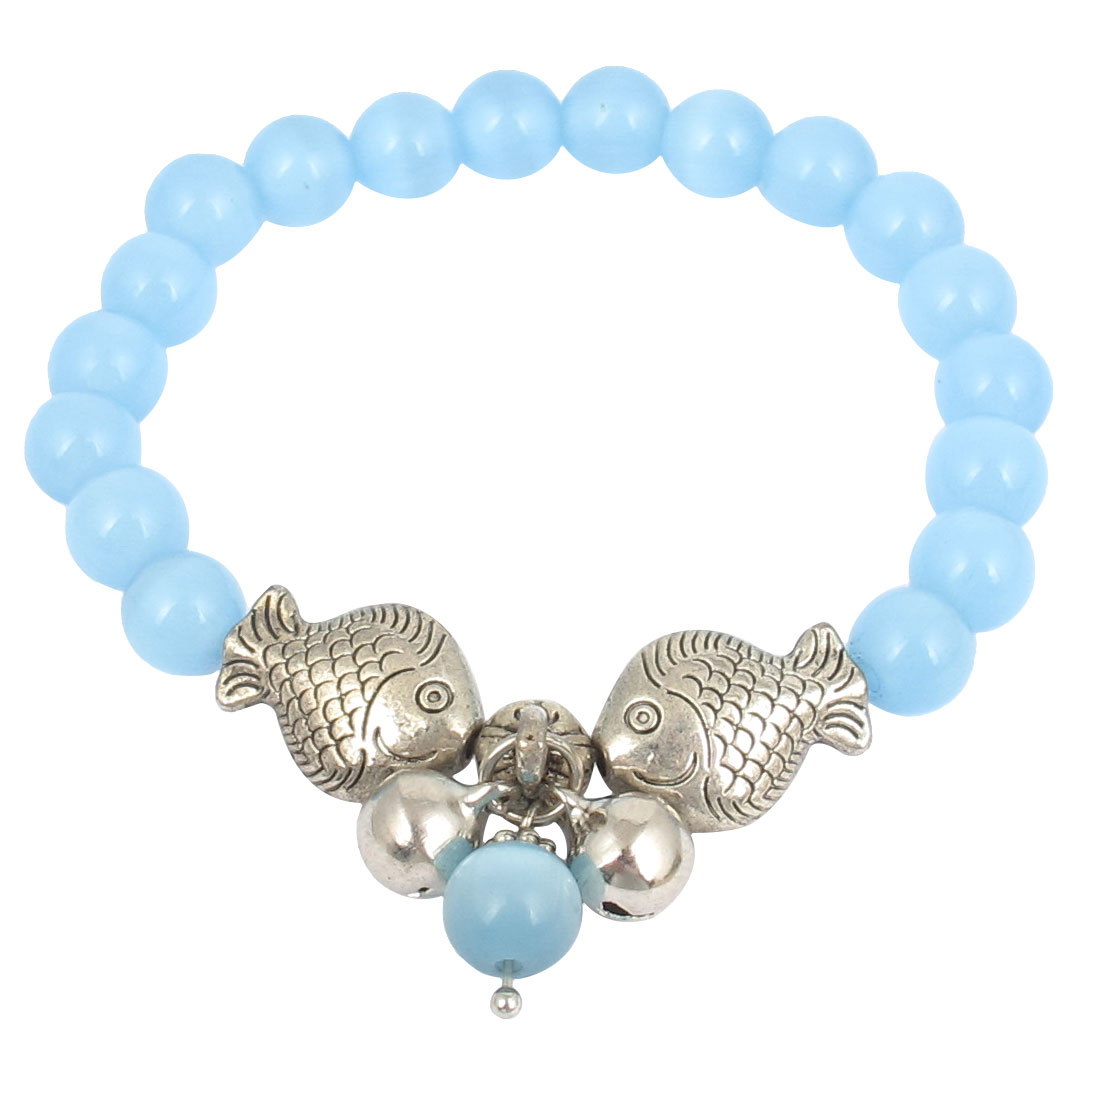 Fish Detail Round Opal Bead Wrist Ornament Bangle Bracelet Blue Silver Tone for Women